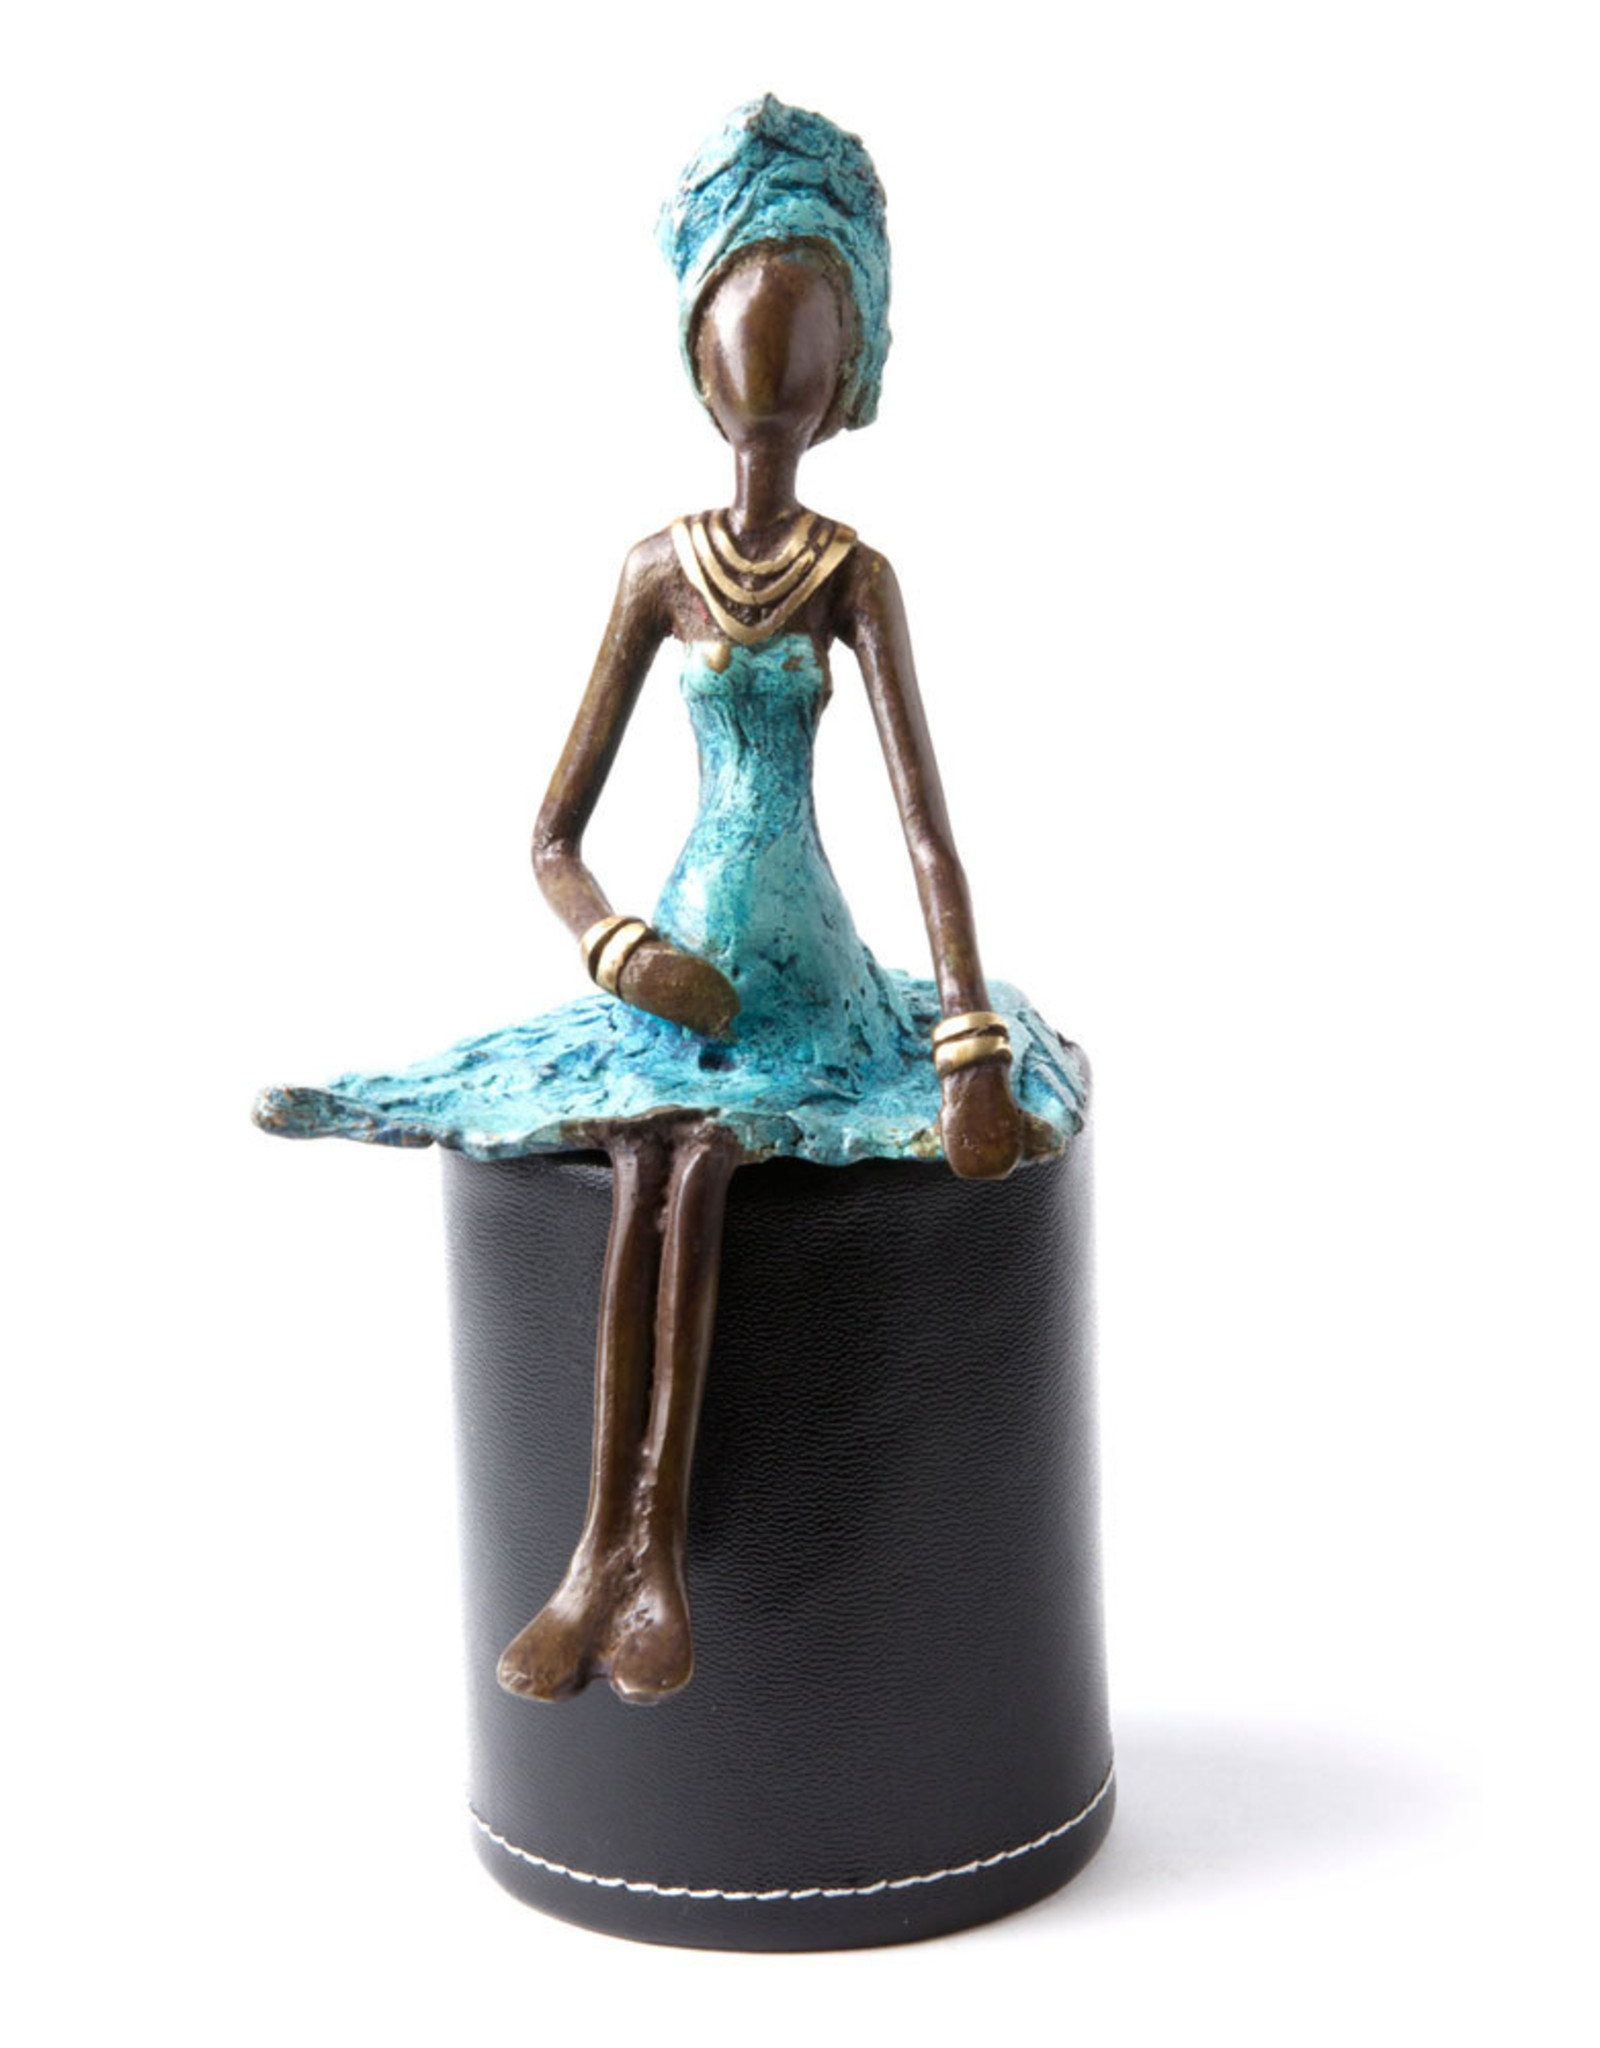 Swahili Wholesale Bronze Expectant Mother Sculpture, Burkina Faso